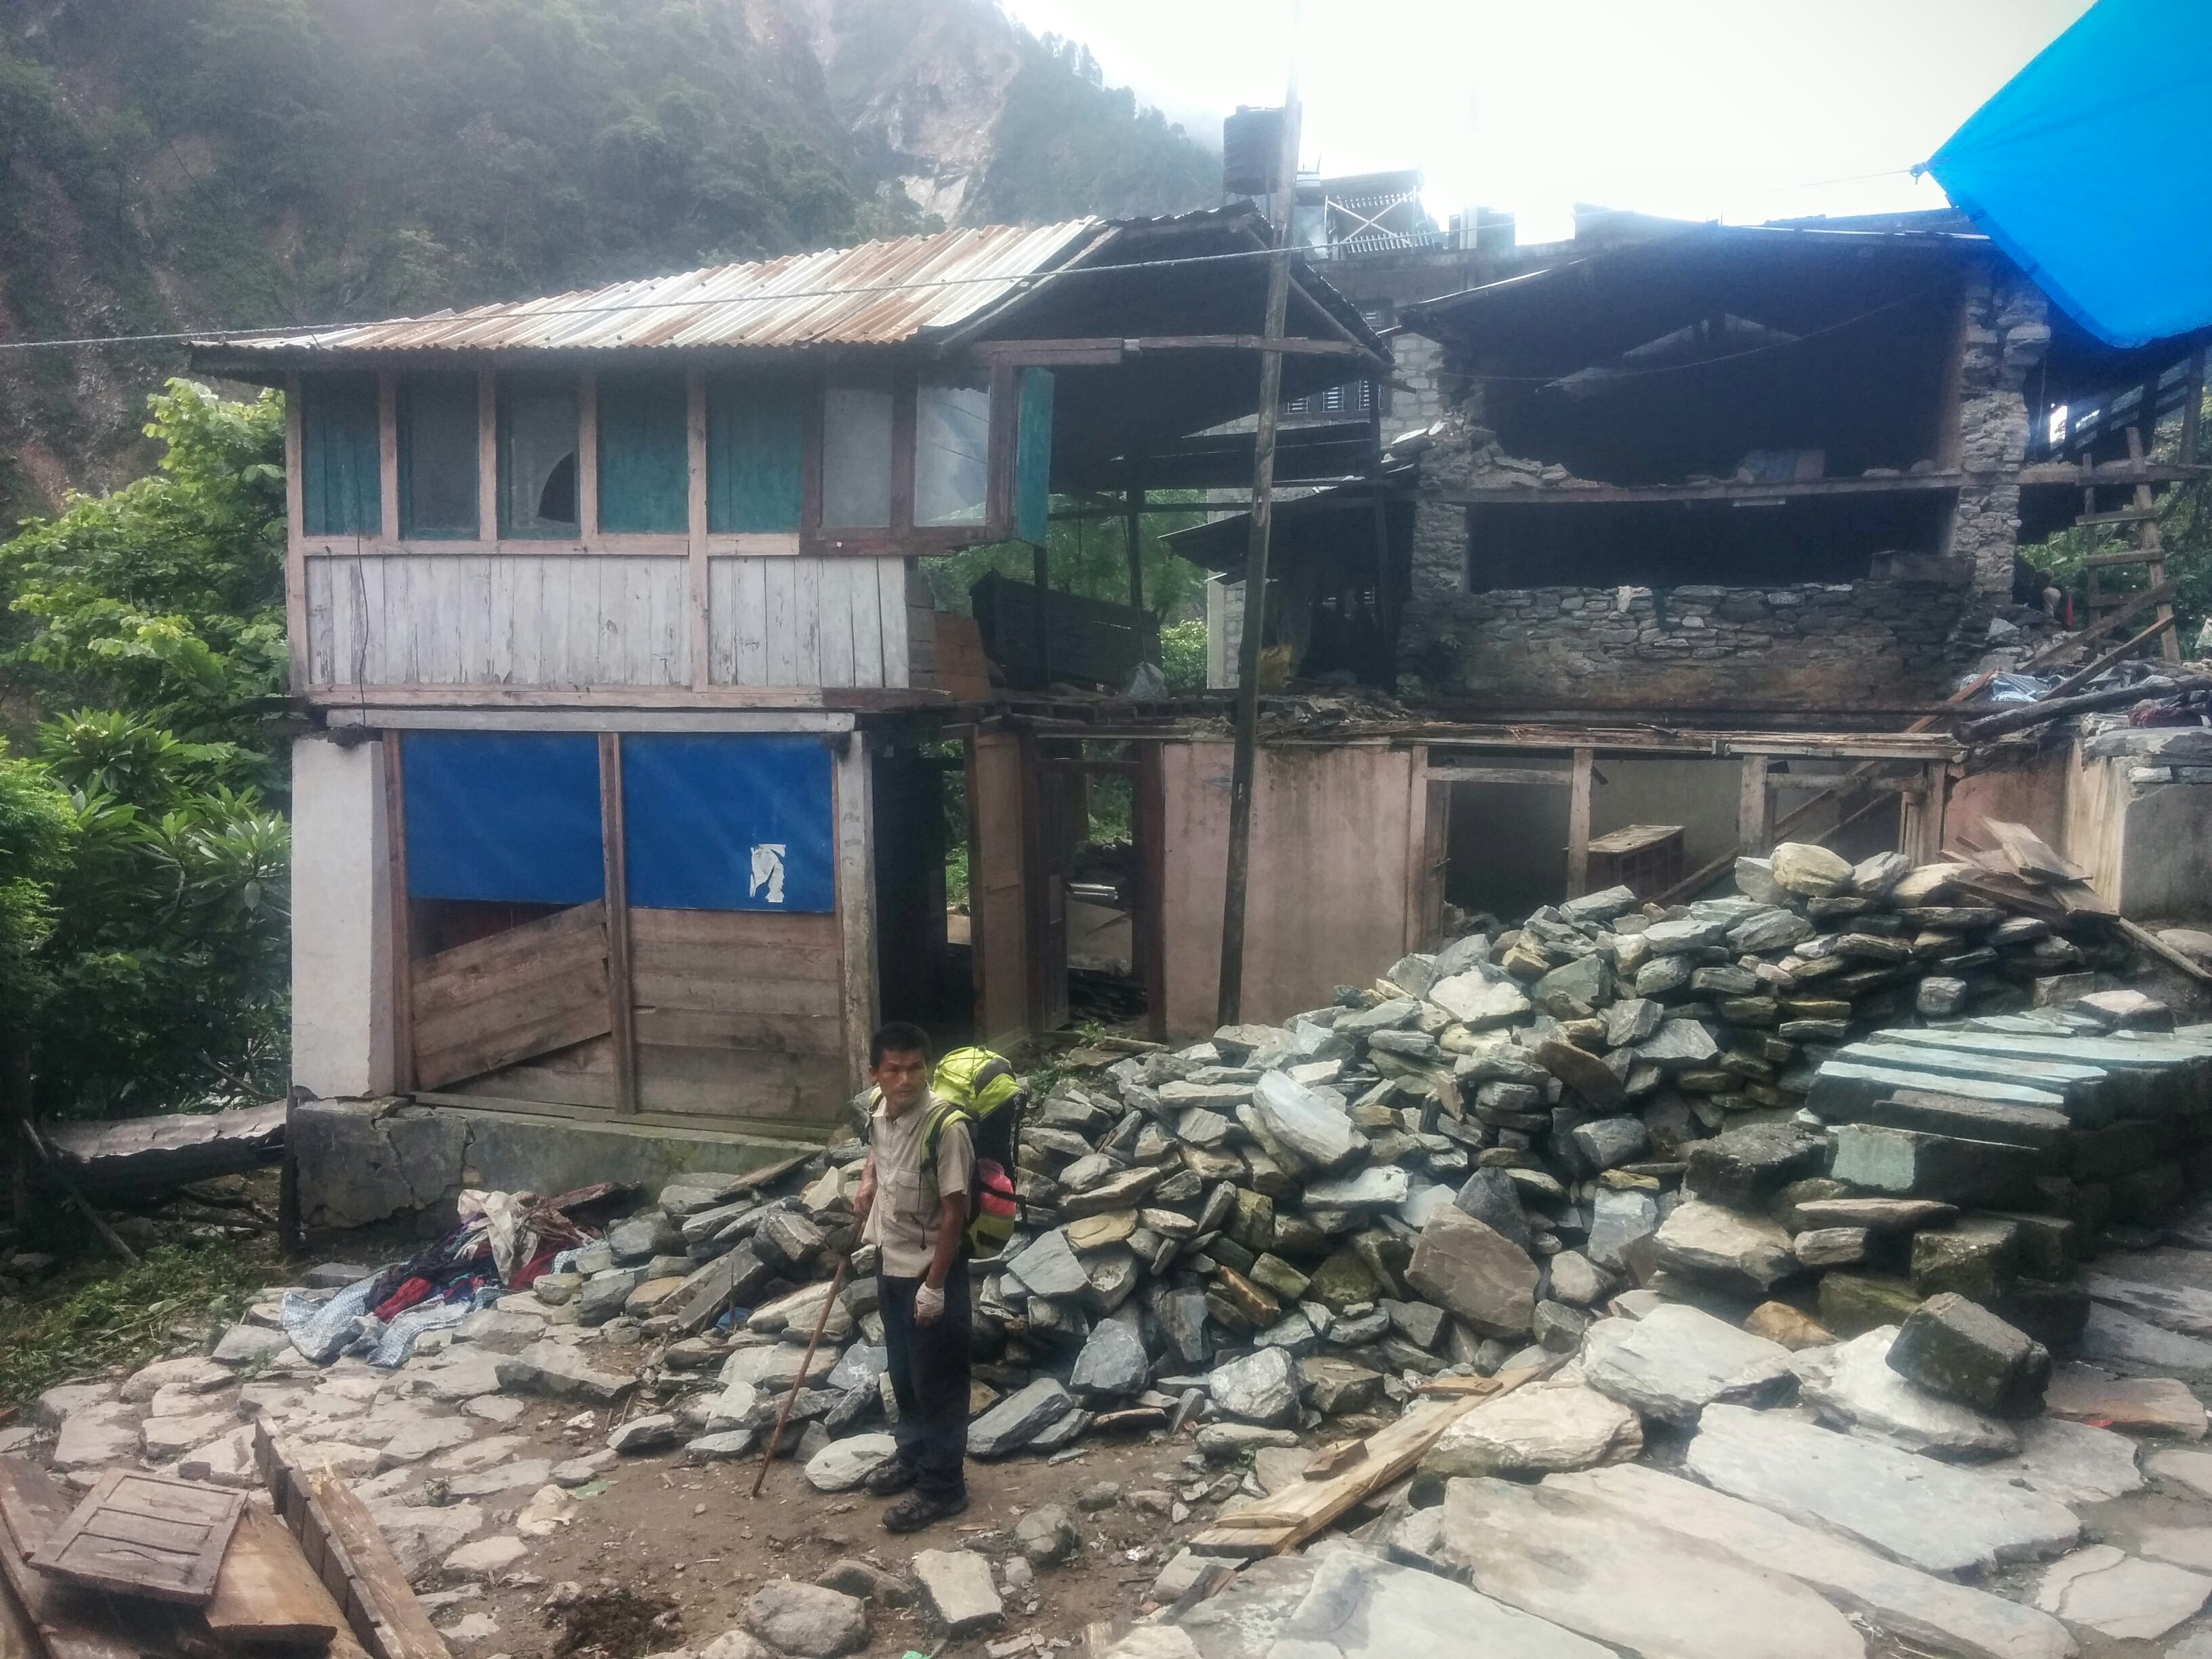 Nepal earthquake damages (and my guide!)